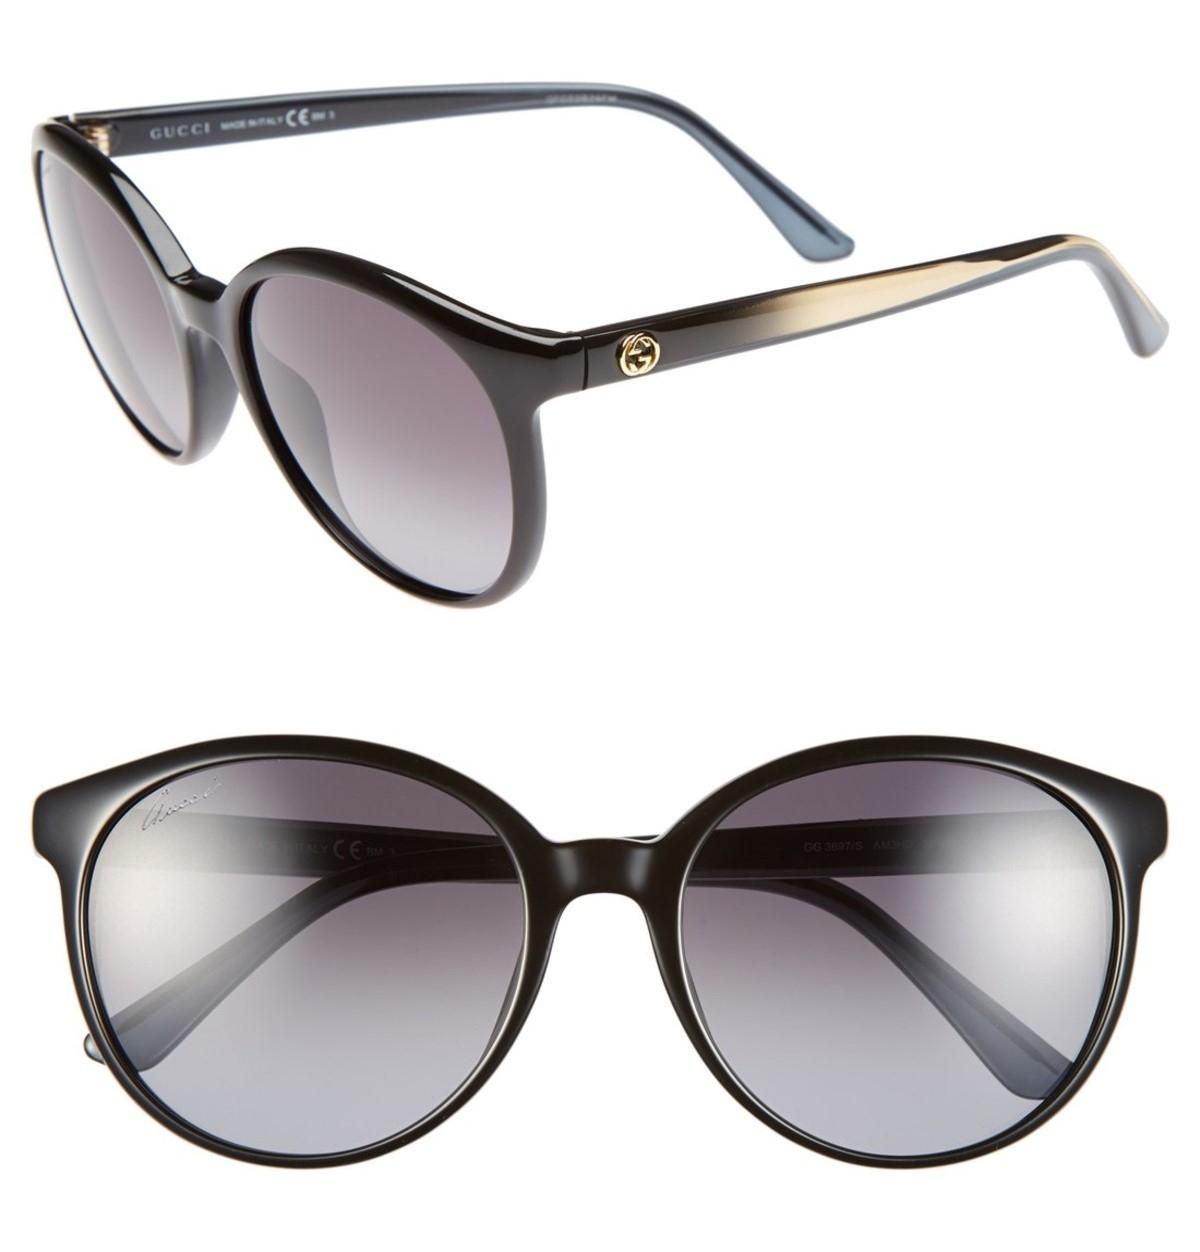 f3813c40be Black New 56mm Retro Shiny Gg 3697 S Sunglasses